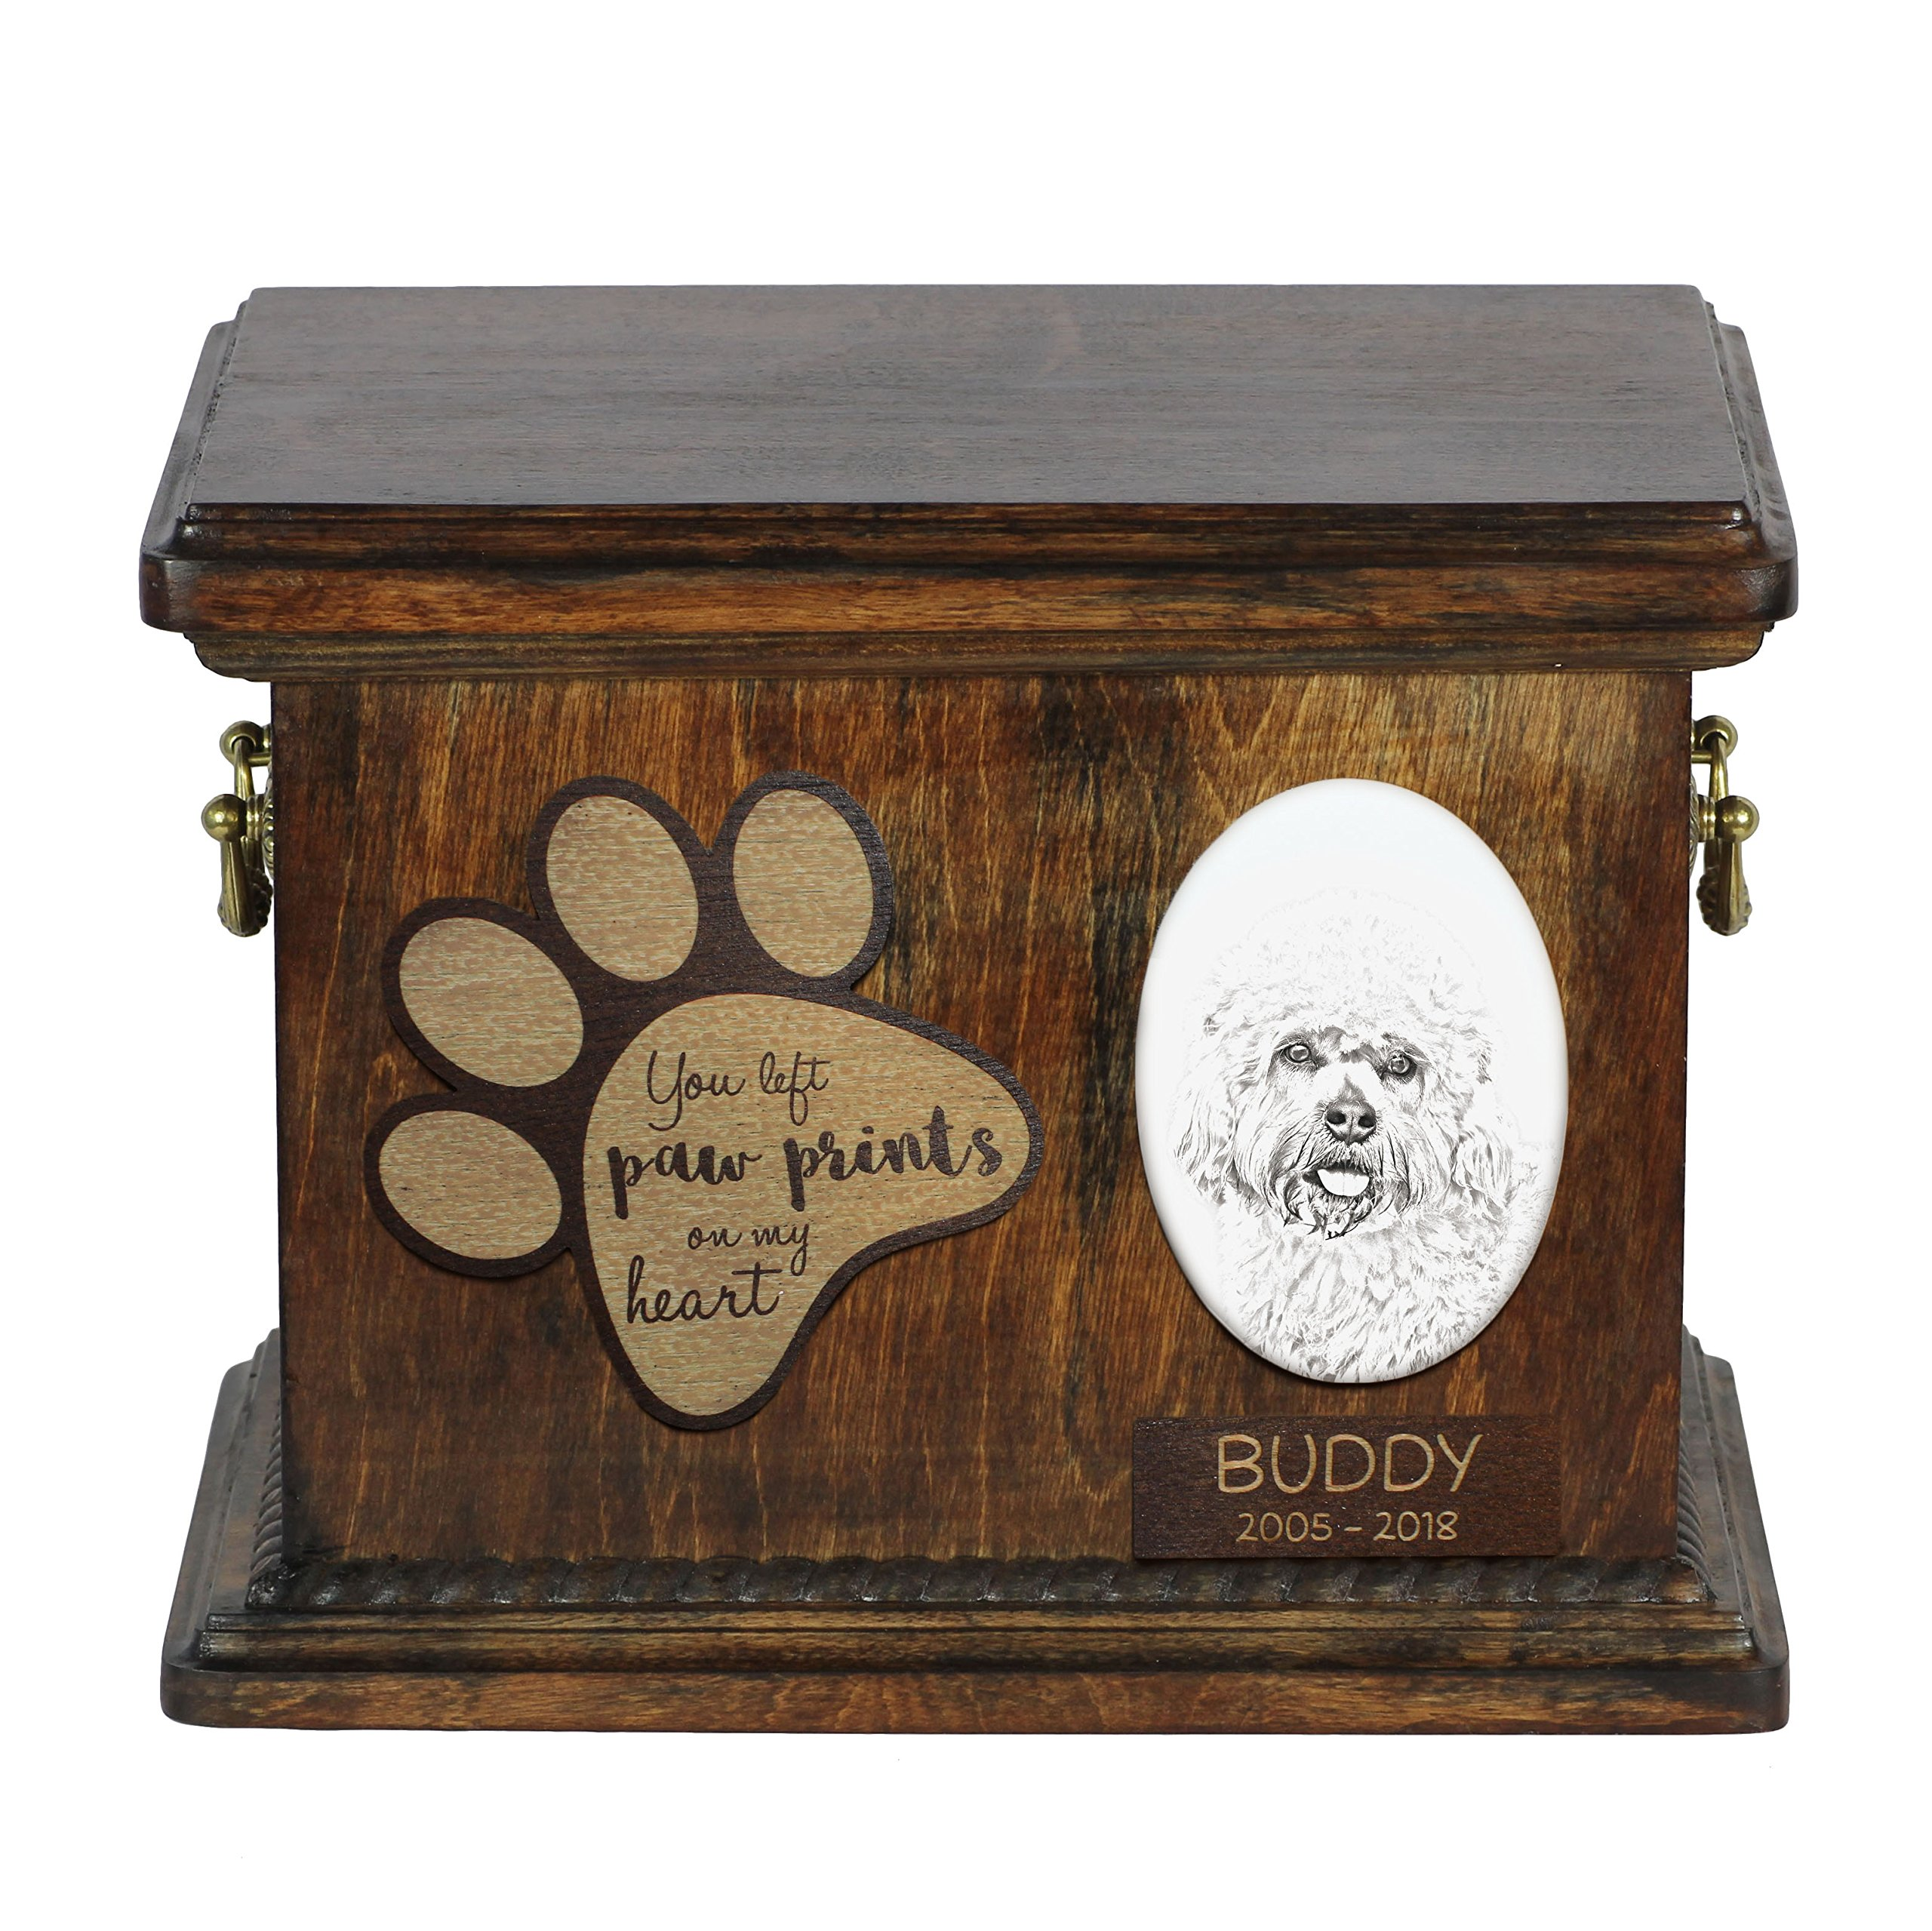 ArtDog Ltd. Dandie Dinmont Terrier, urn for dog's ashes with ceramic plate and description